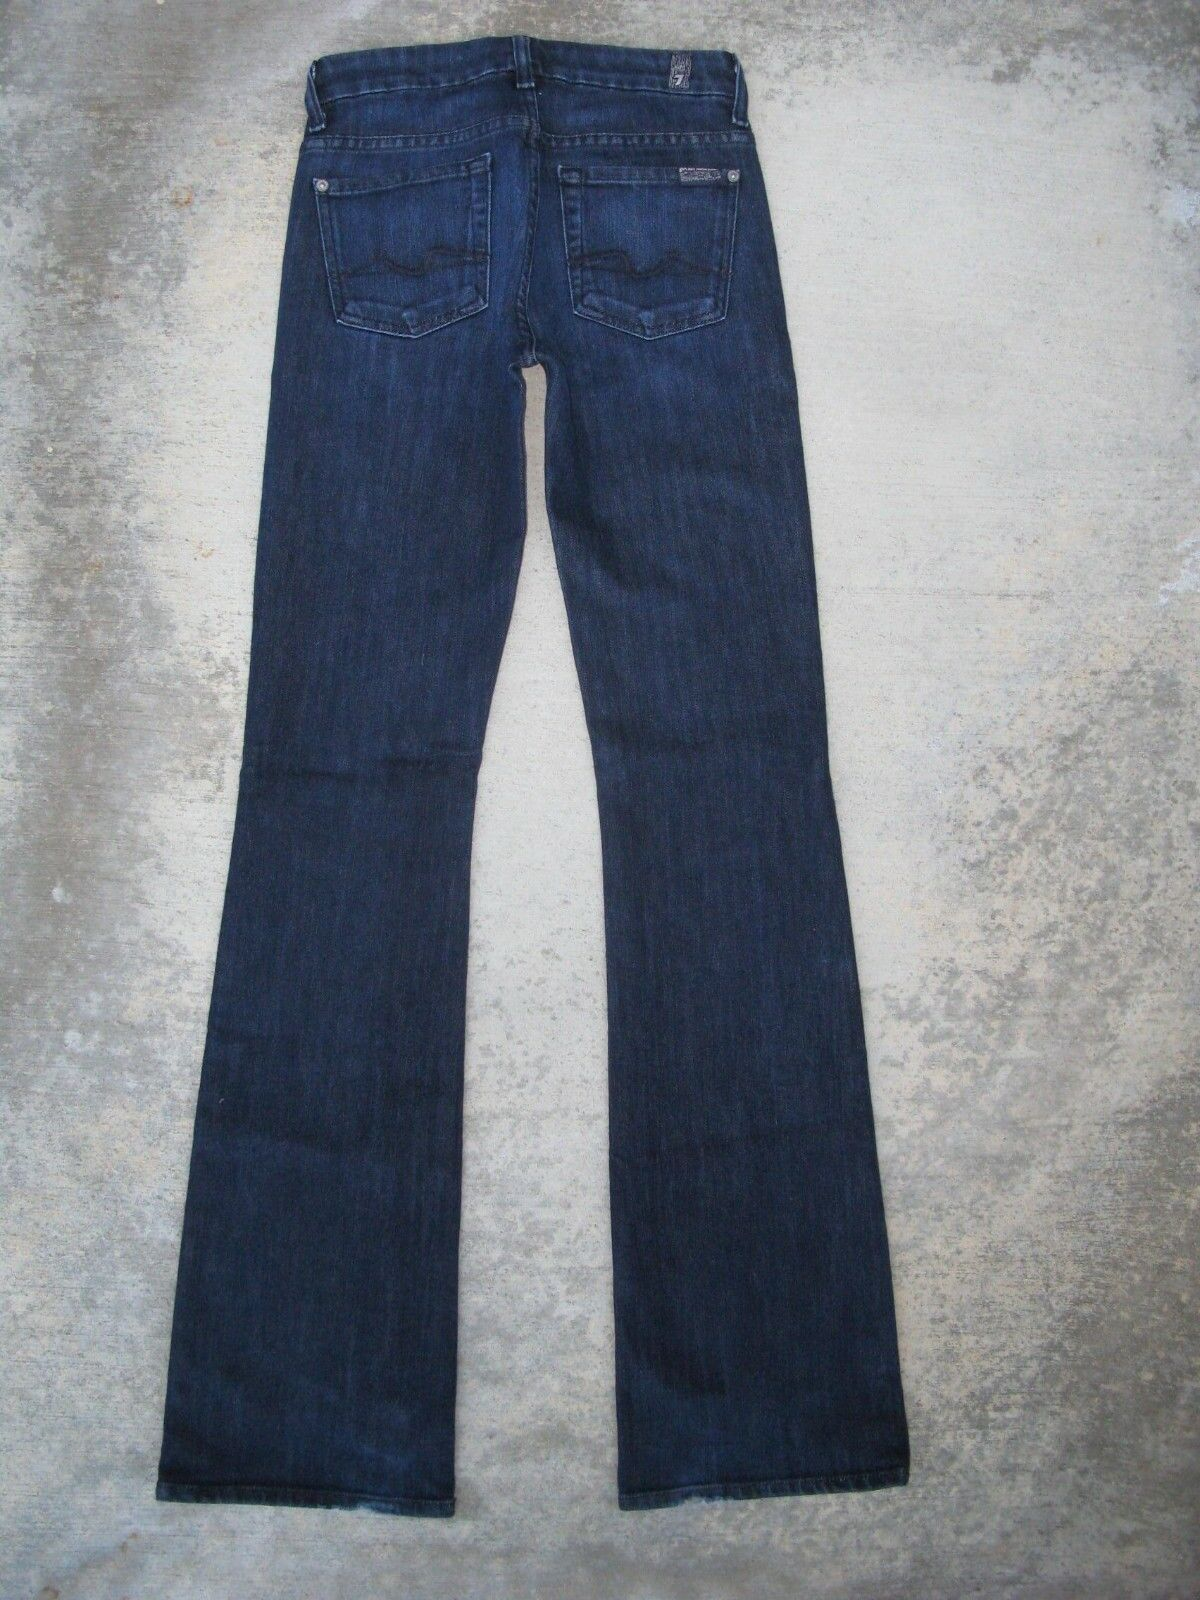 7 for all Mankind Kimmie Bootcut jeans Sz 24 Mid Waist Dark Distressed USA made